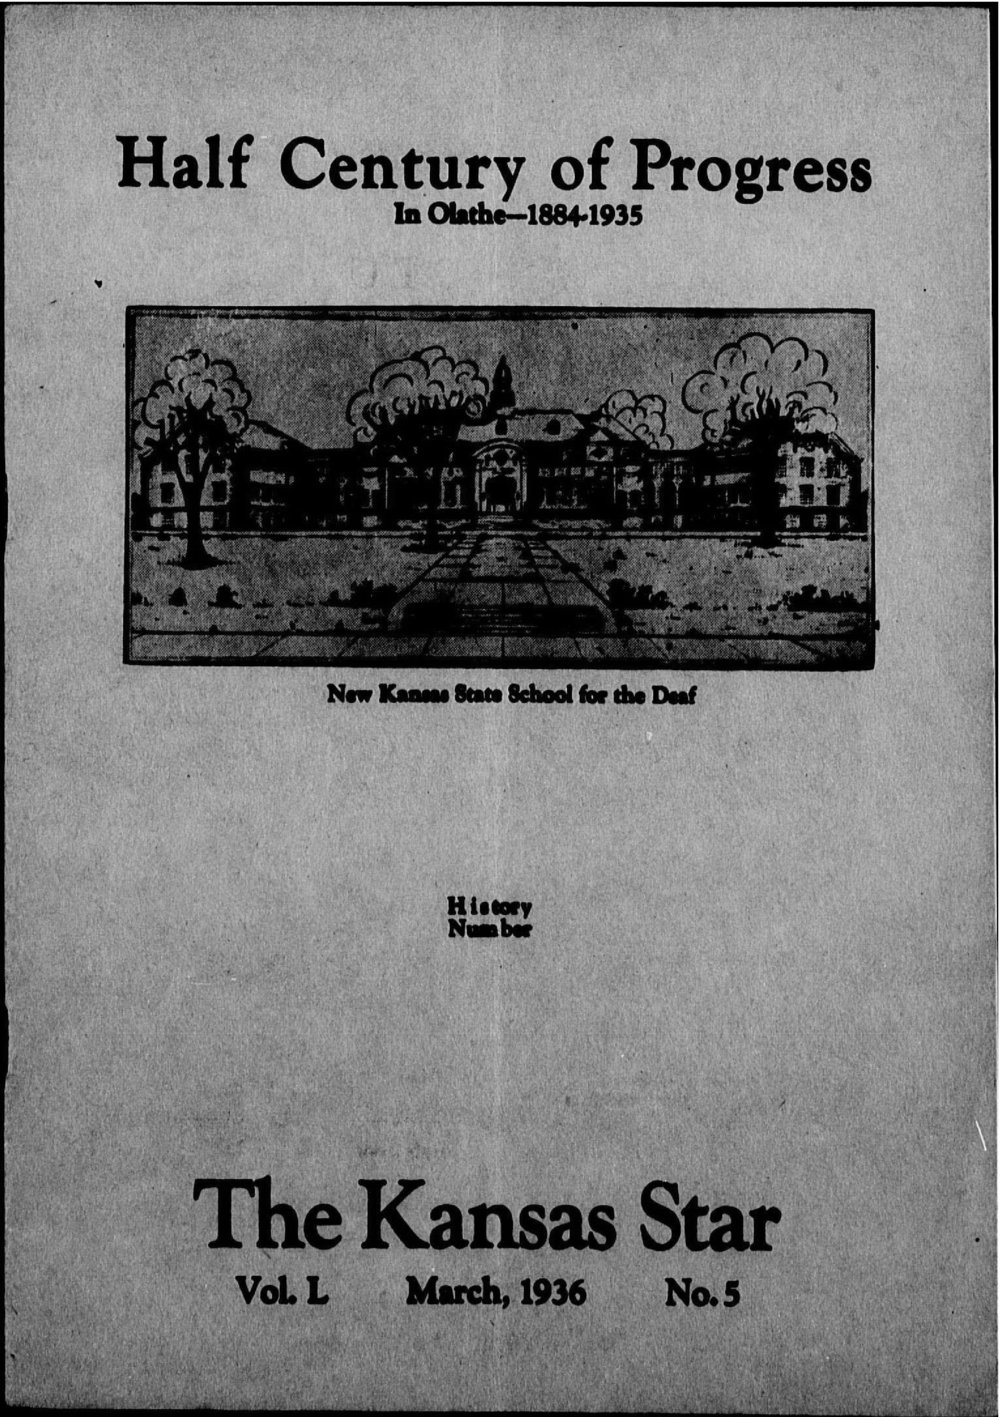 The Kansas Star, volume 50, number 5 - Front cover